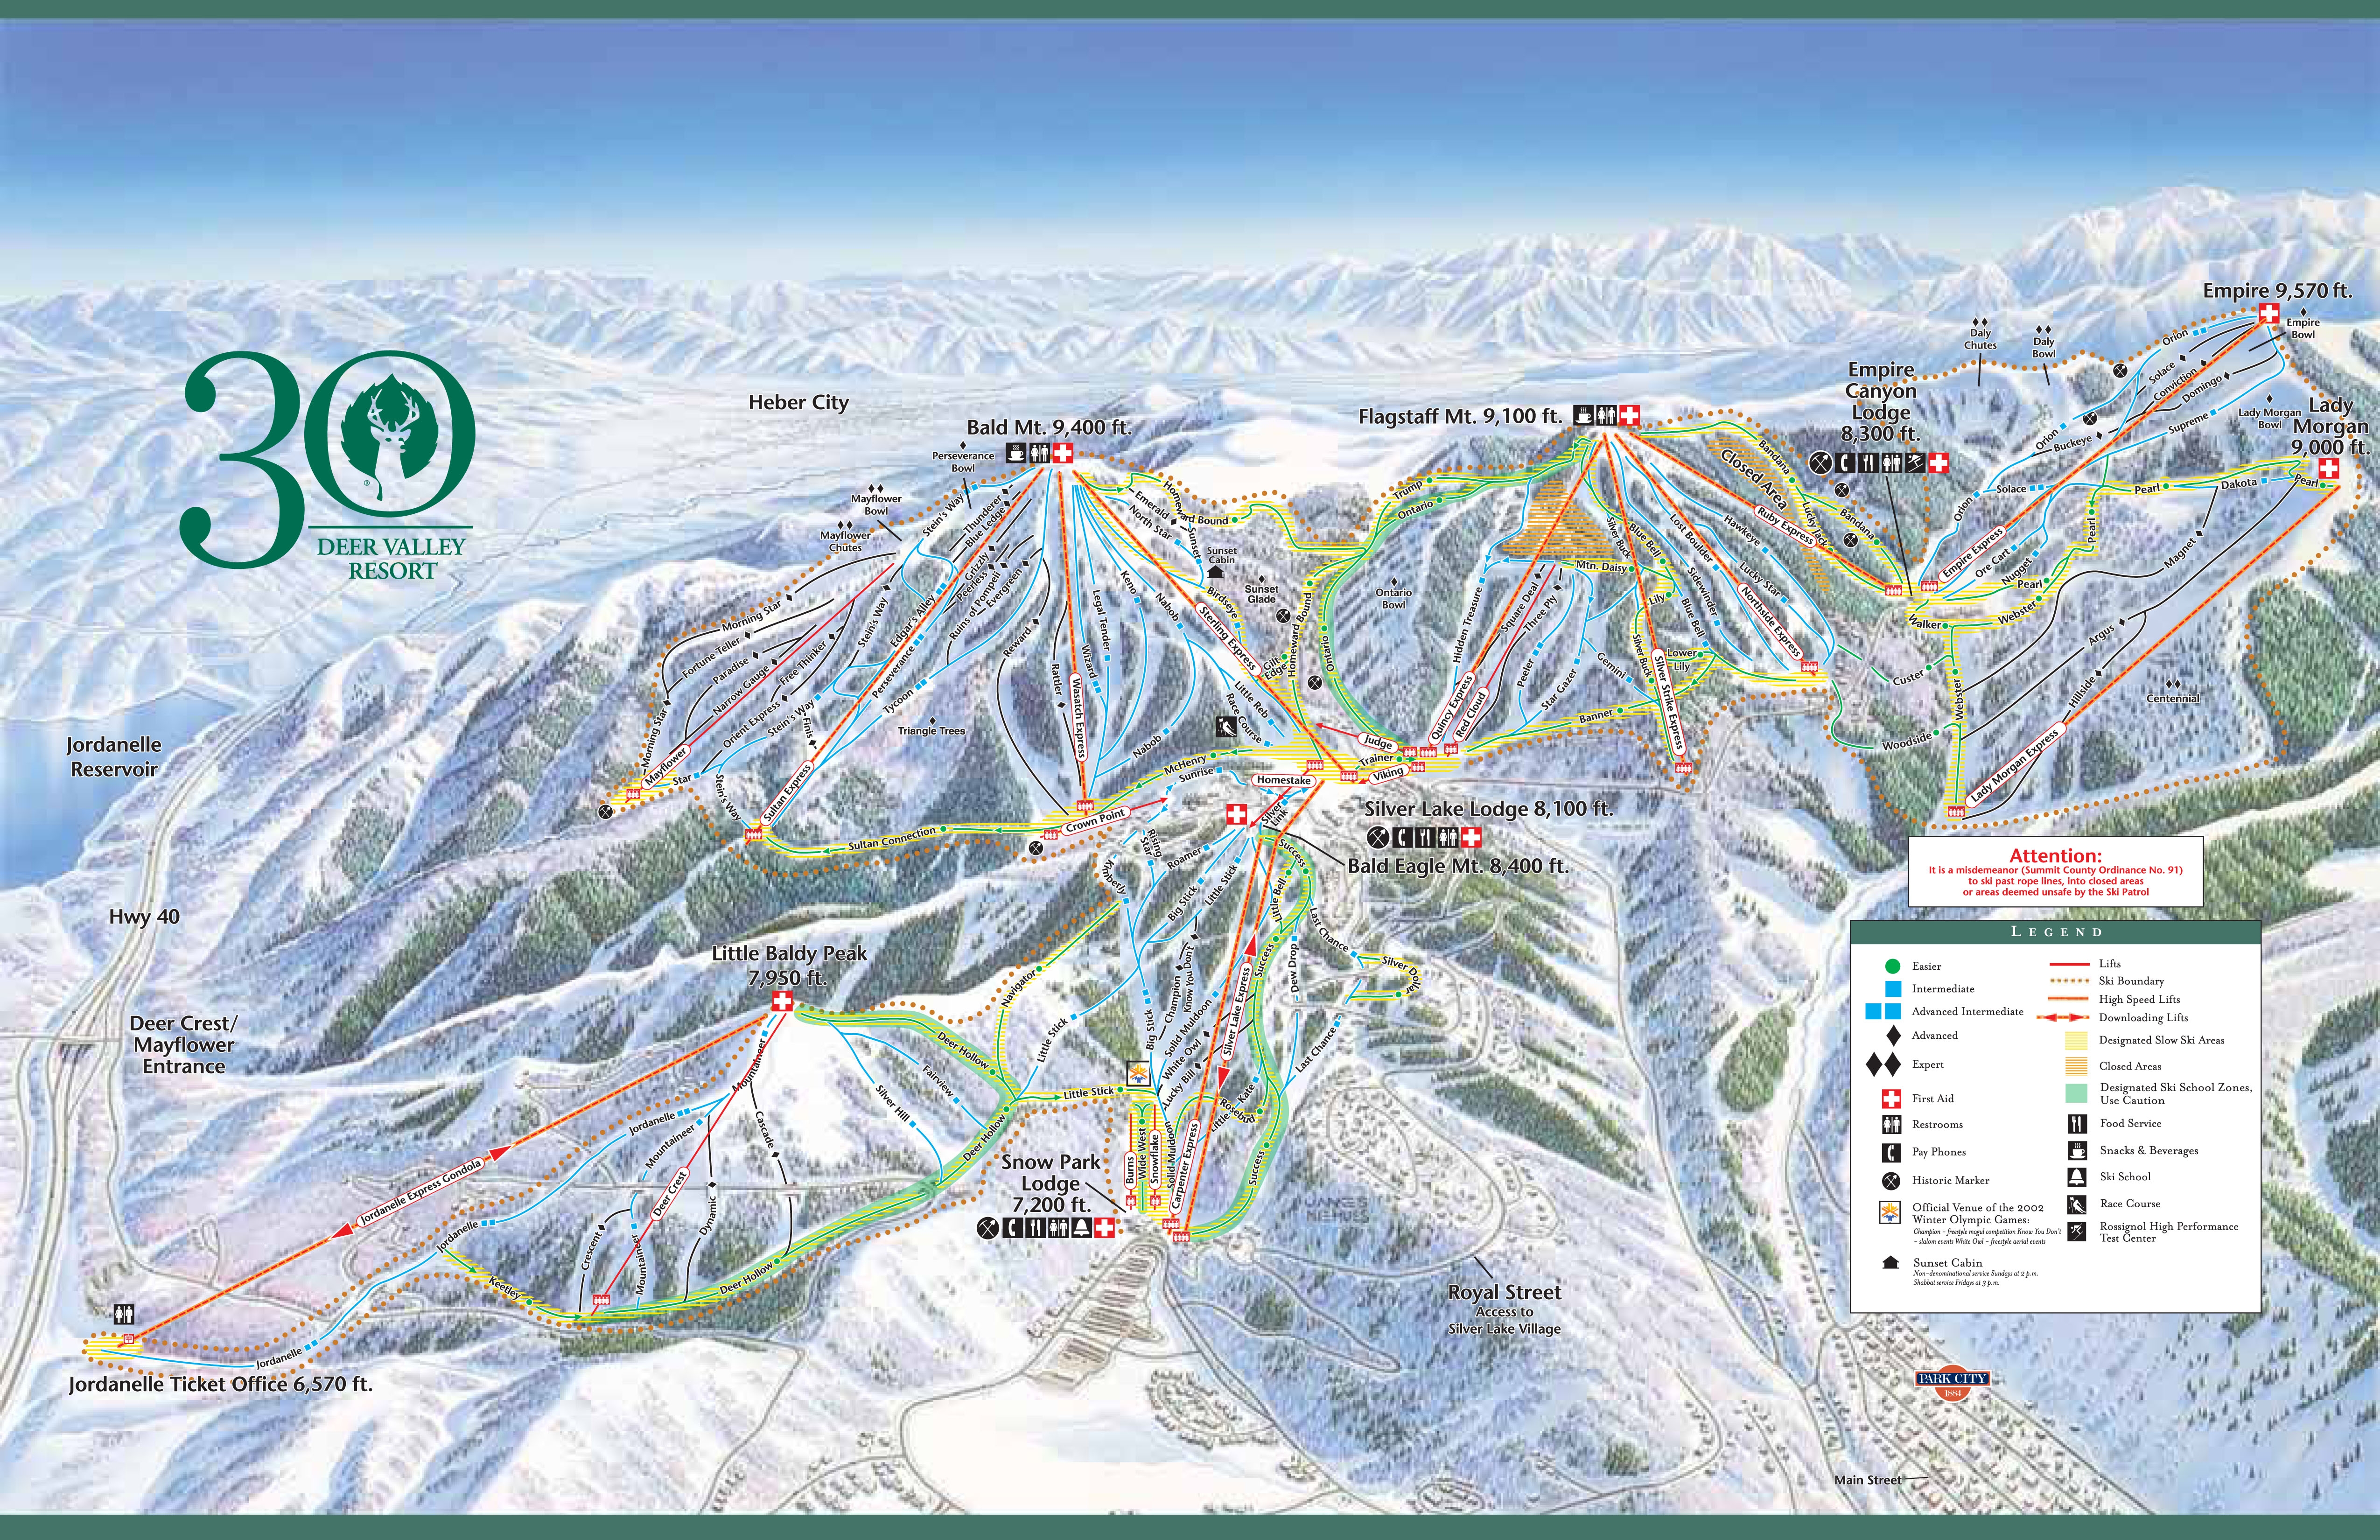 Deer Valley Piste Maps and Ski Resort Map